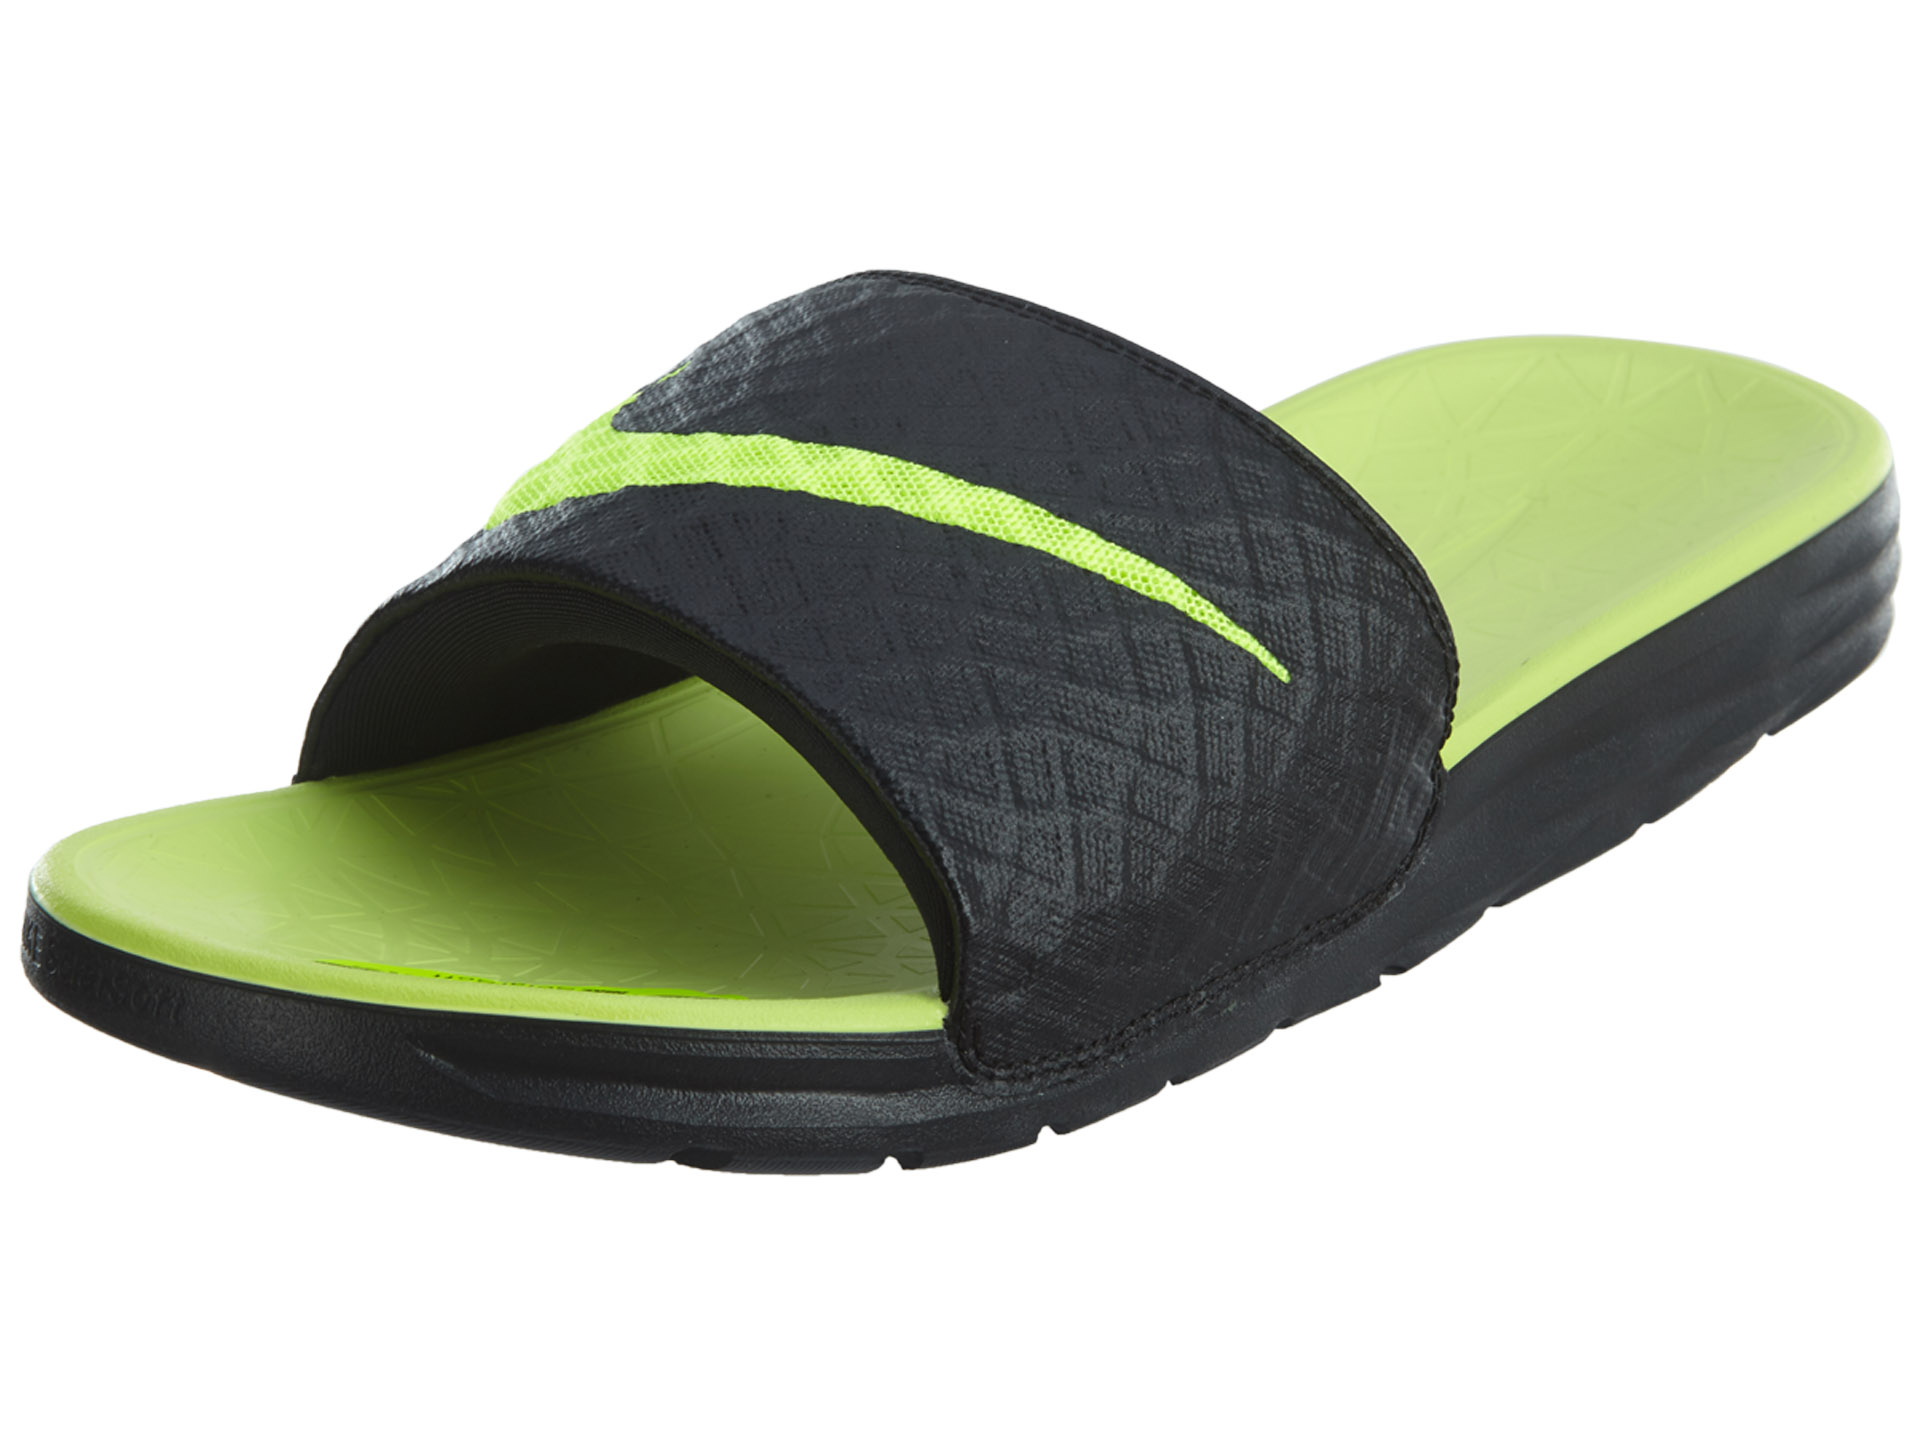 46570d847470 Nike Mens Benassi Solarsoft Slide Sandals 705474-070